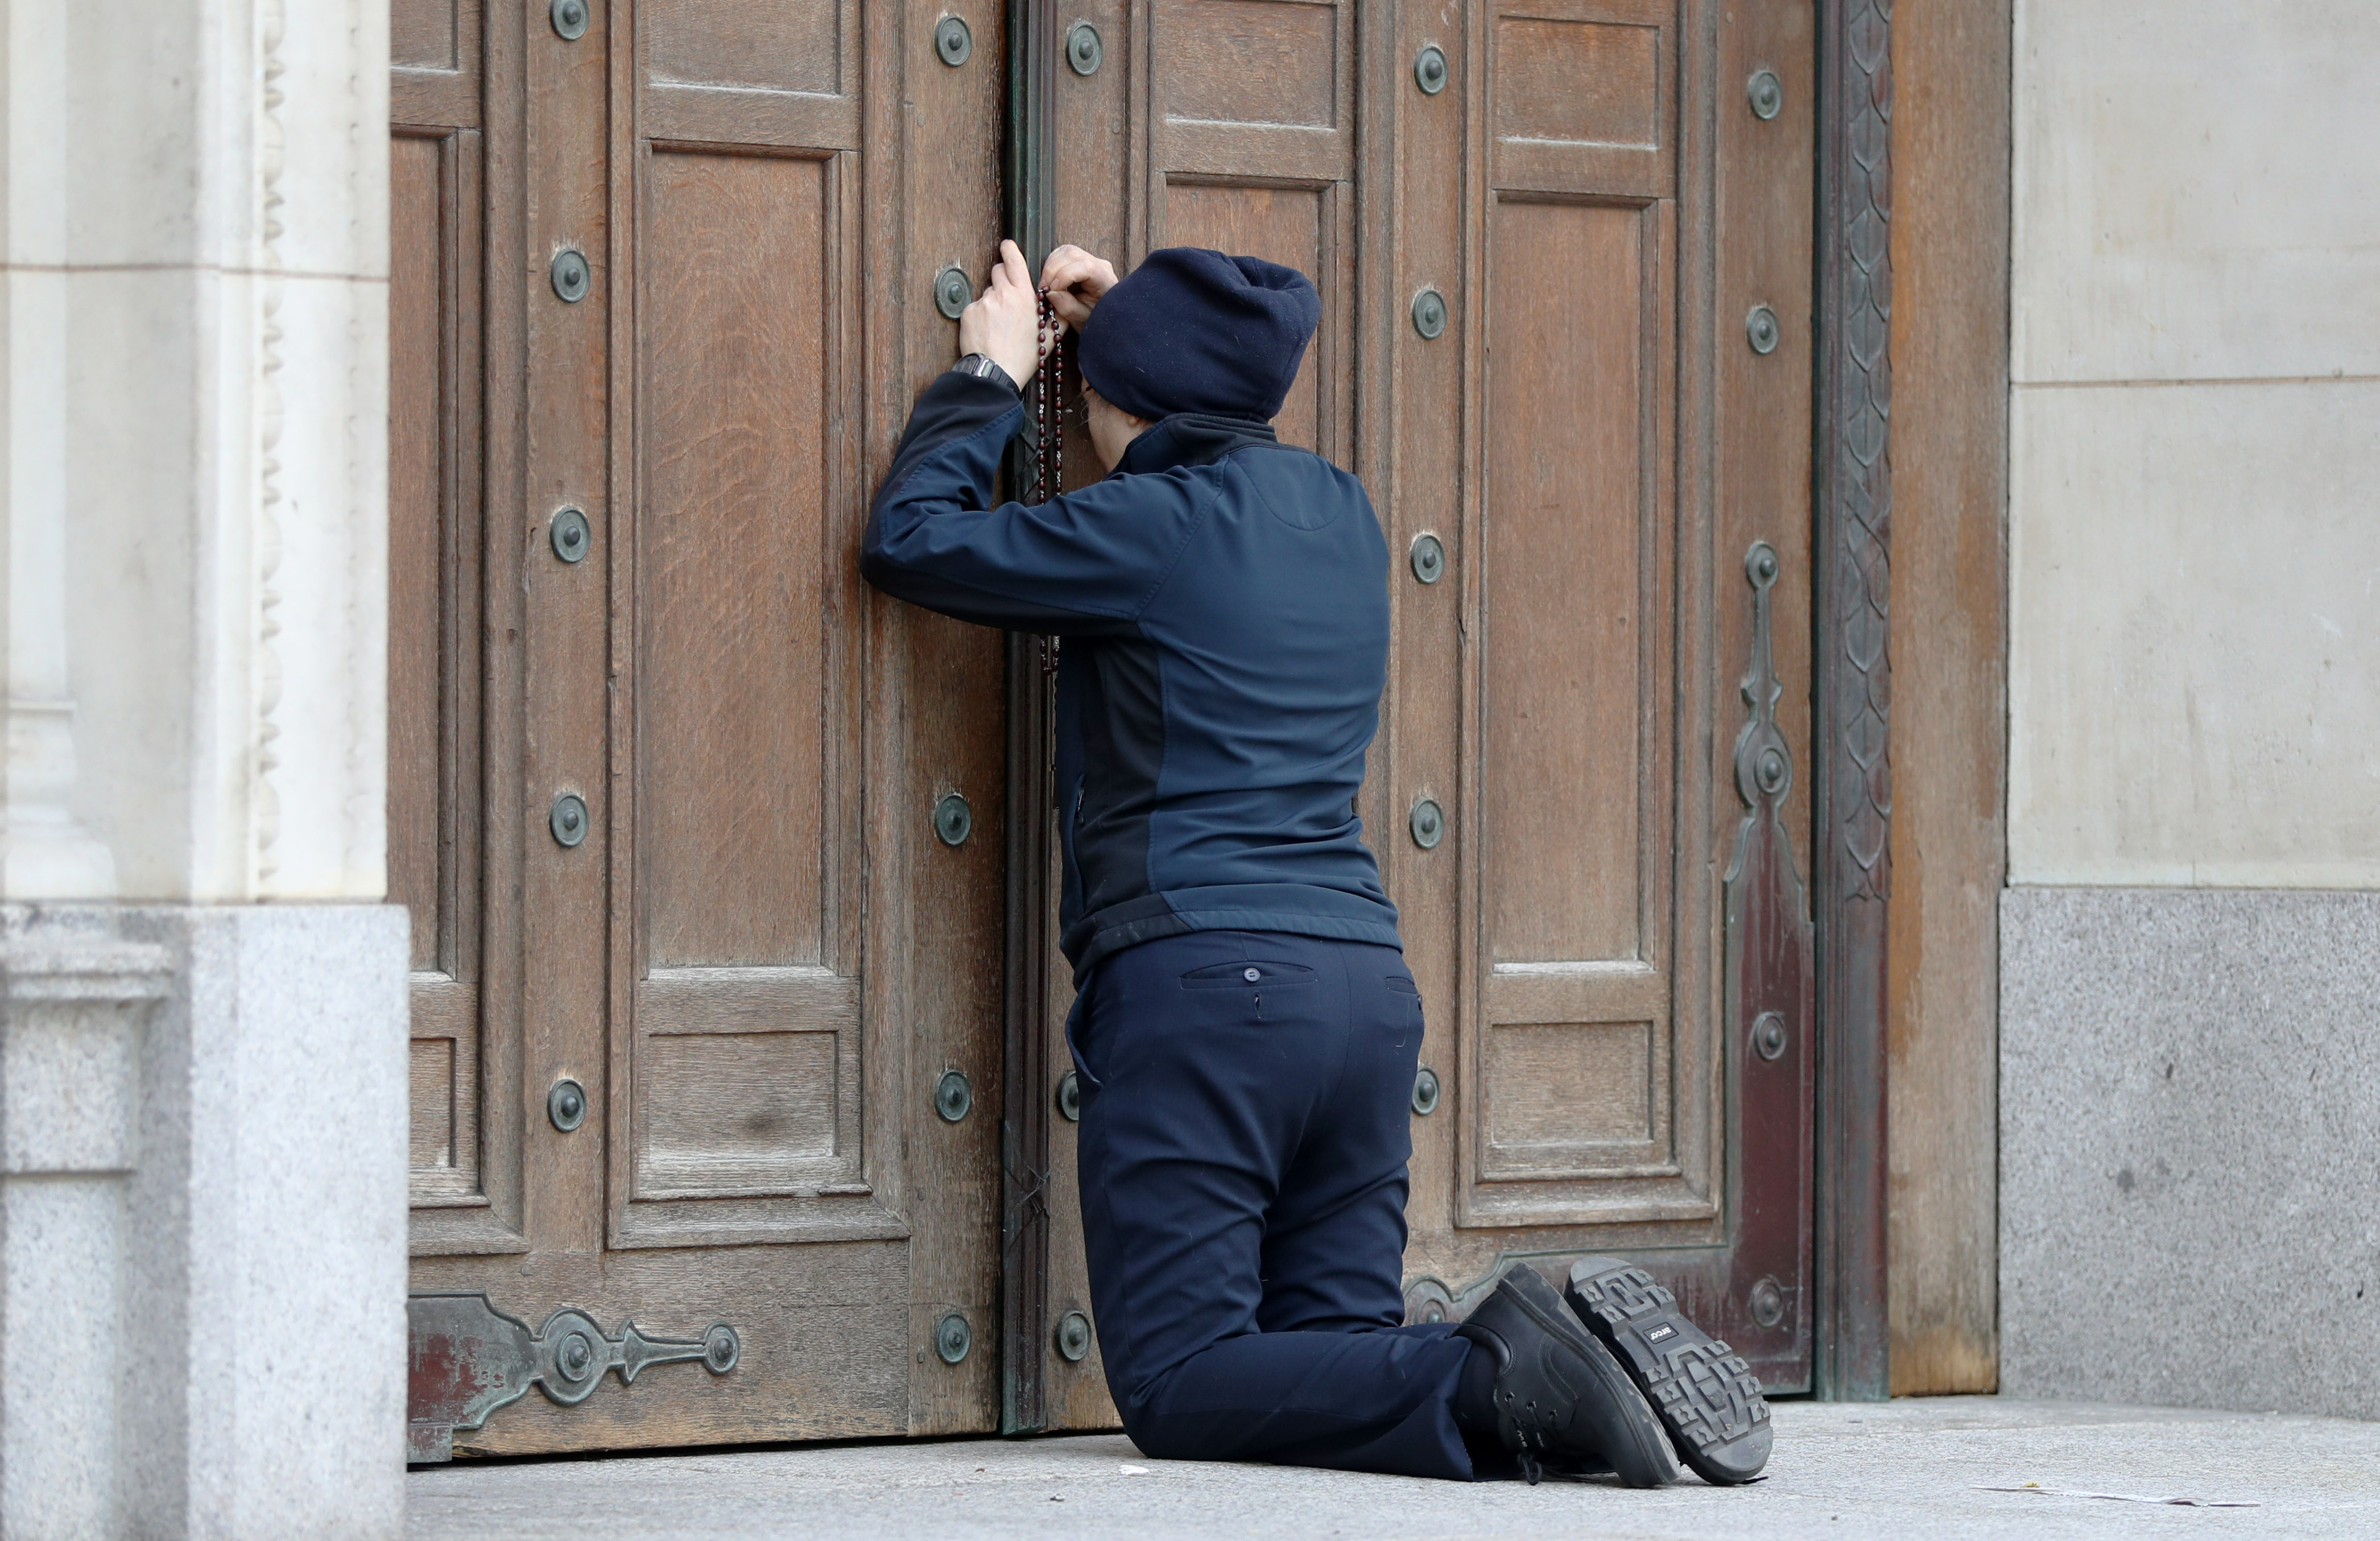 A woman prays at the closed doors of Westminster Cathedral ahead of the Easter morning mass, London, as the UK continues in lockdown to help curb the spread of the coronavirus. Churches across the country have been continuing to broadcast services digitally in the lead-up to Easter, with more than 1,000 livestreams taking place on a regular basis.